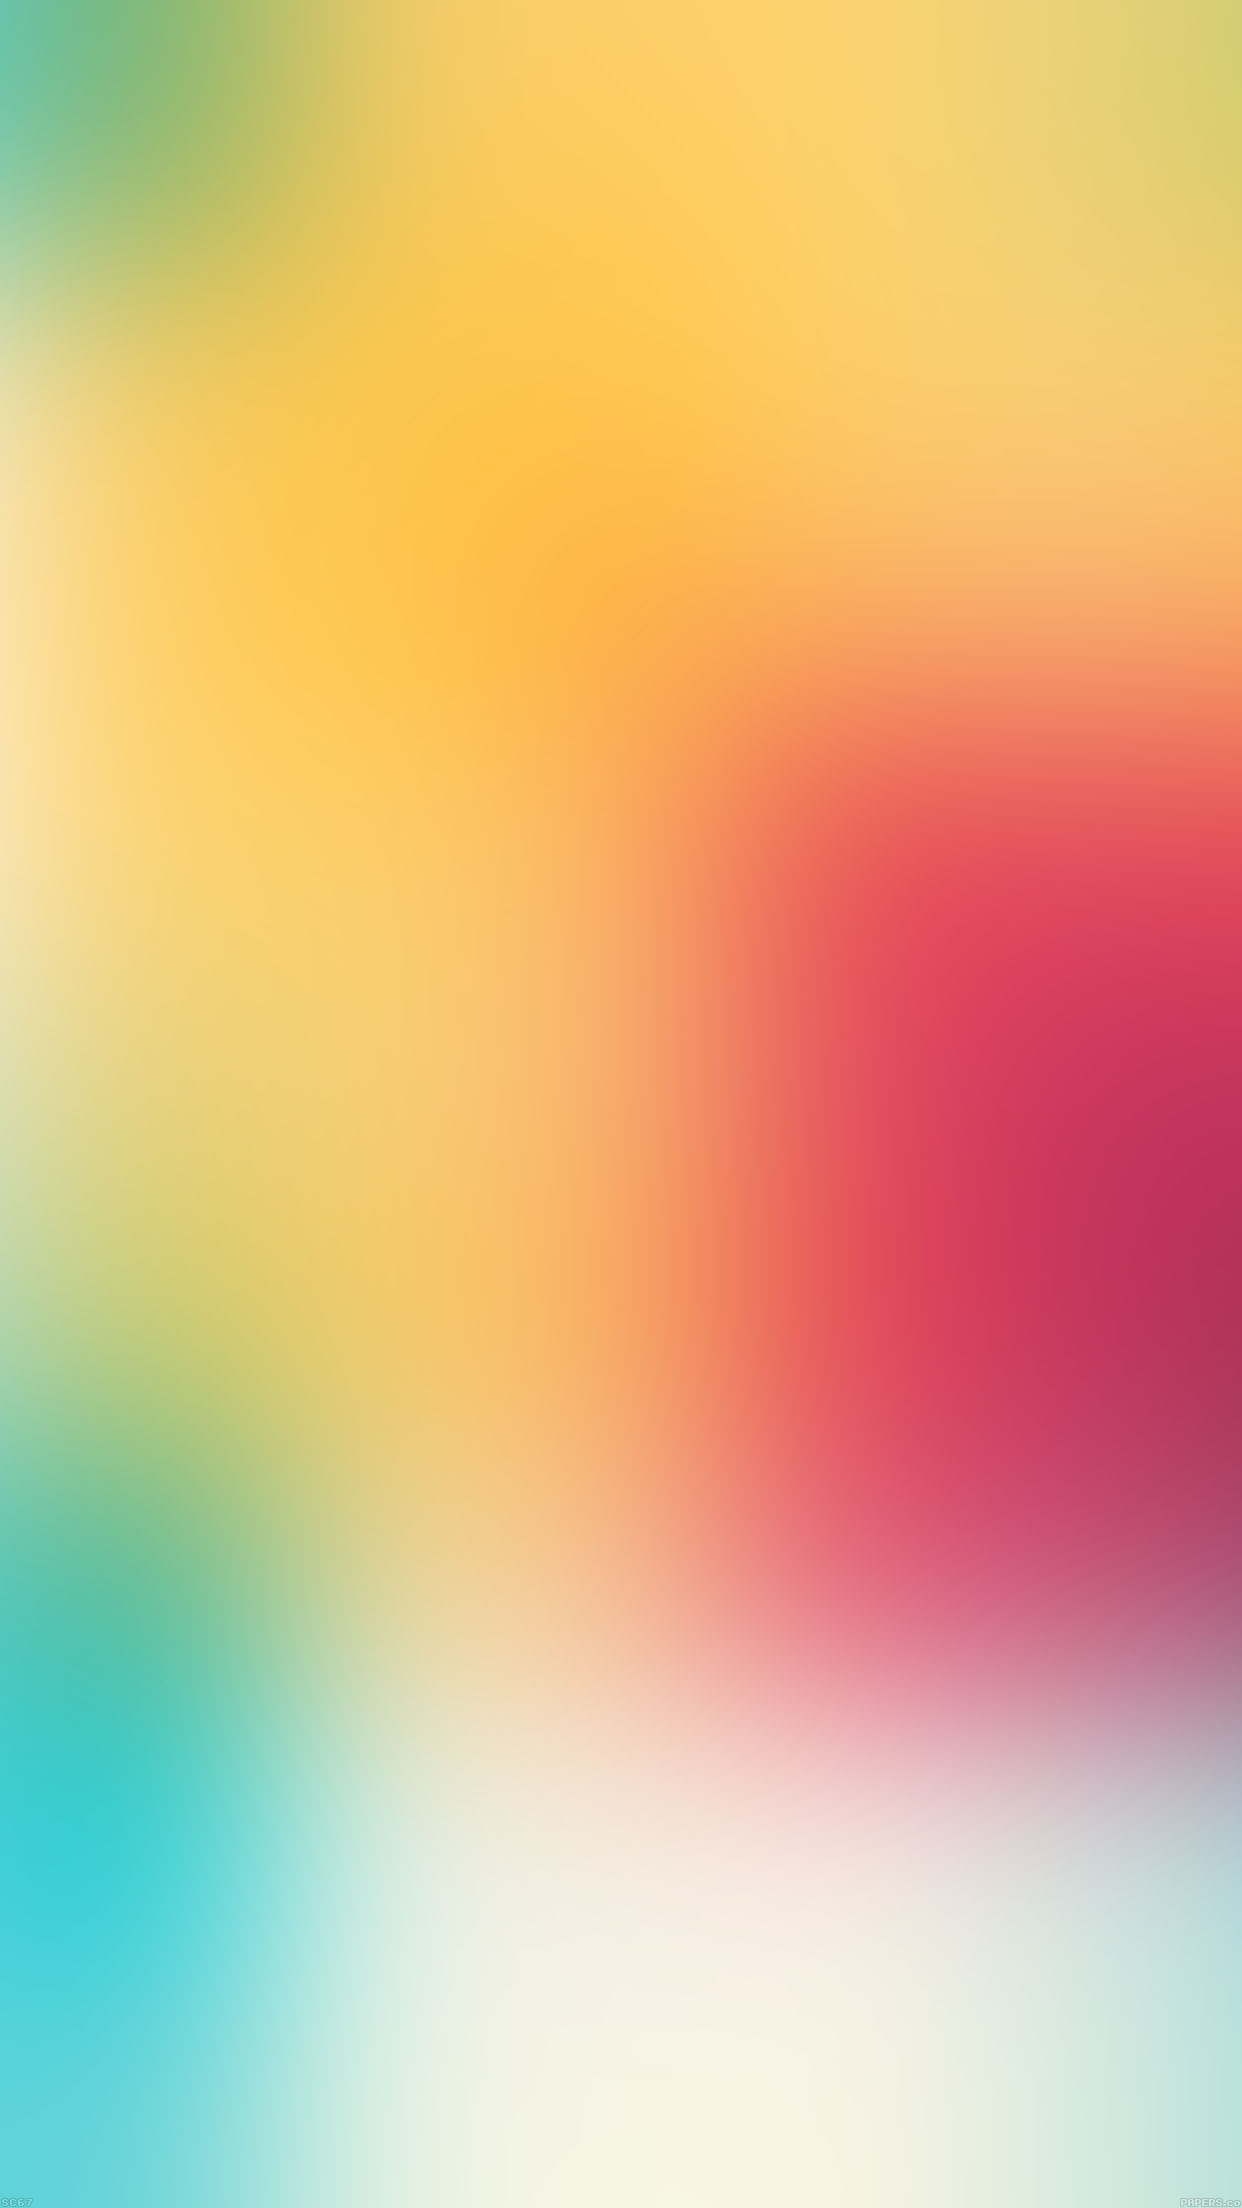 Iphone 6 Plus - Color Wallpaper Iphone 7 Plus , HD Wallpaper & Backgrounds